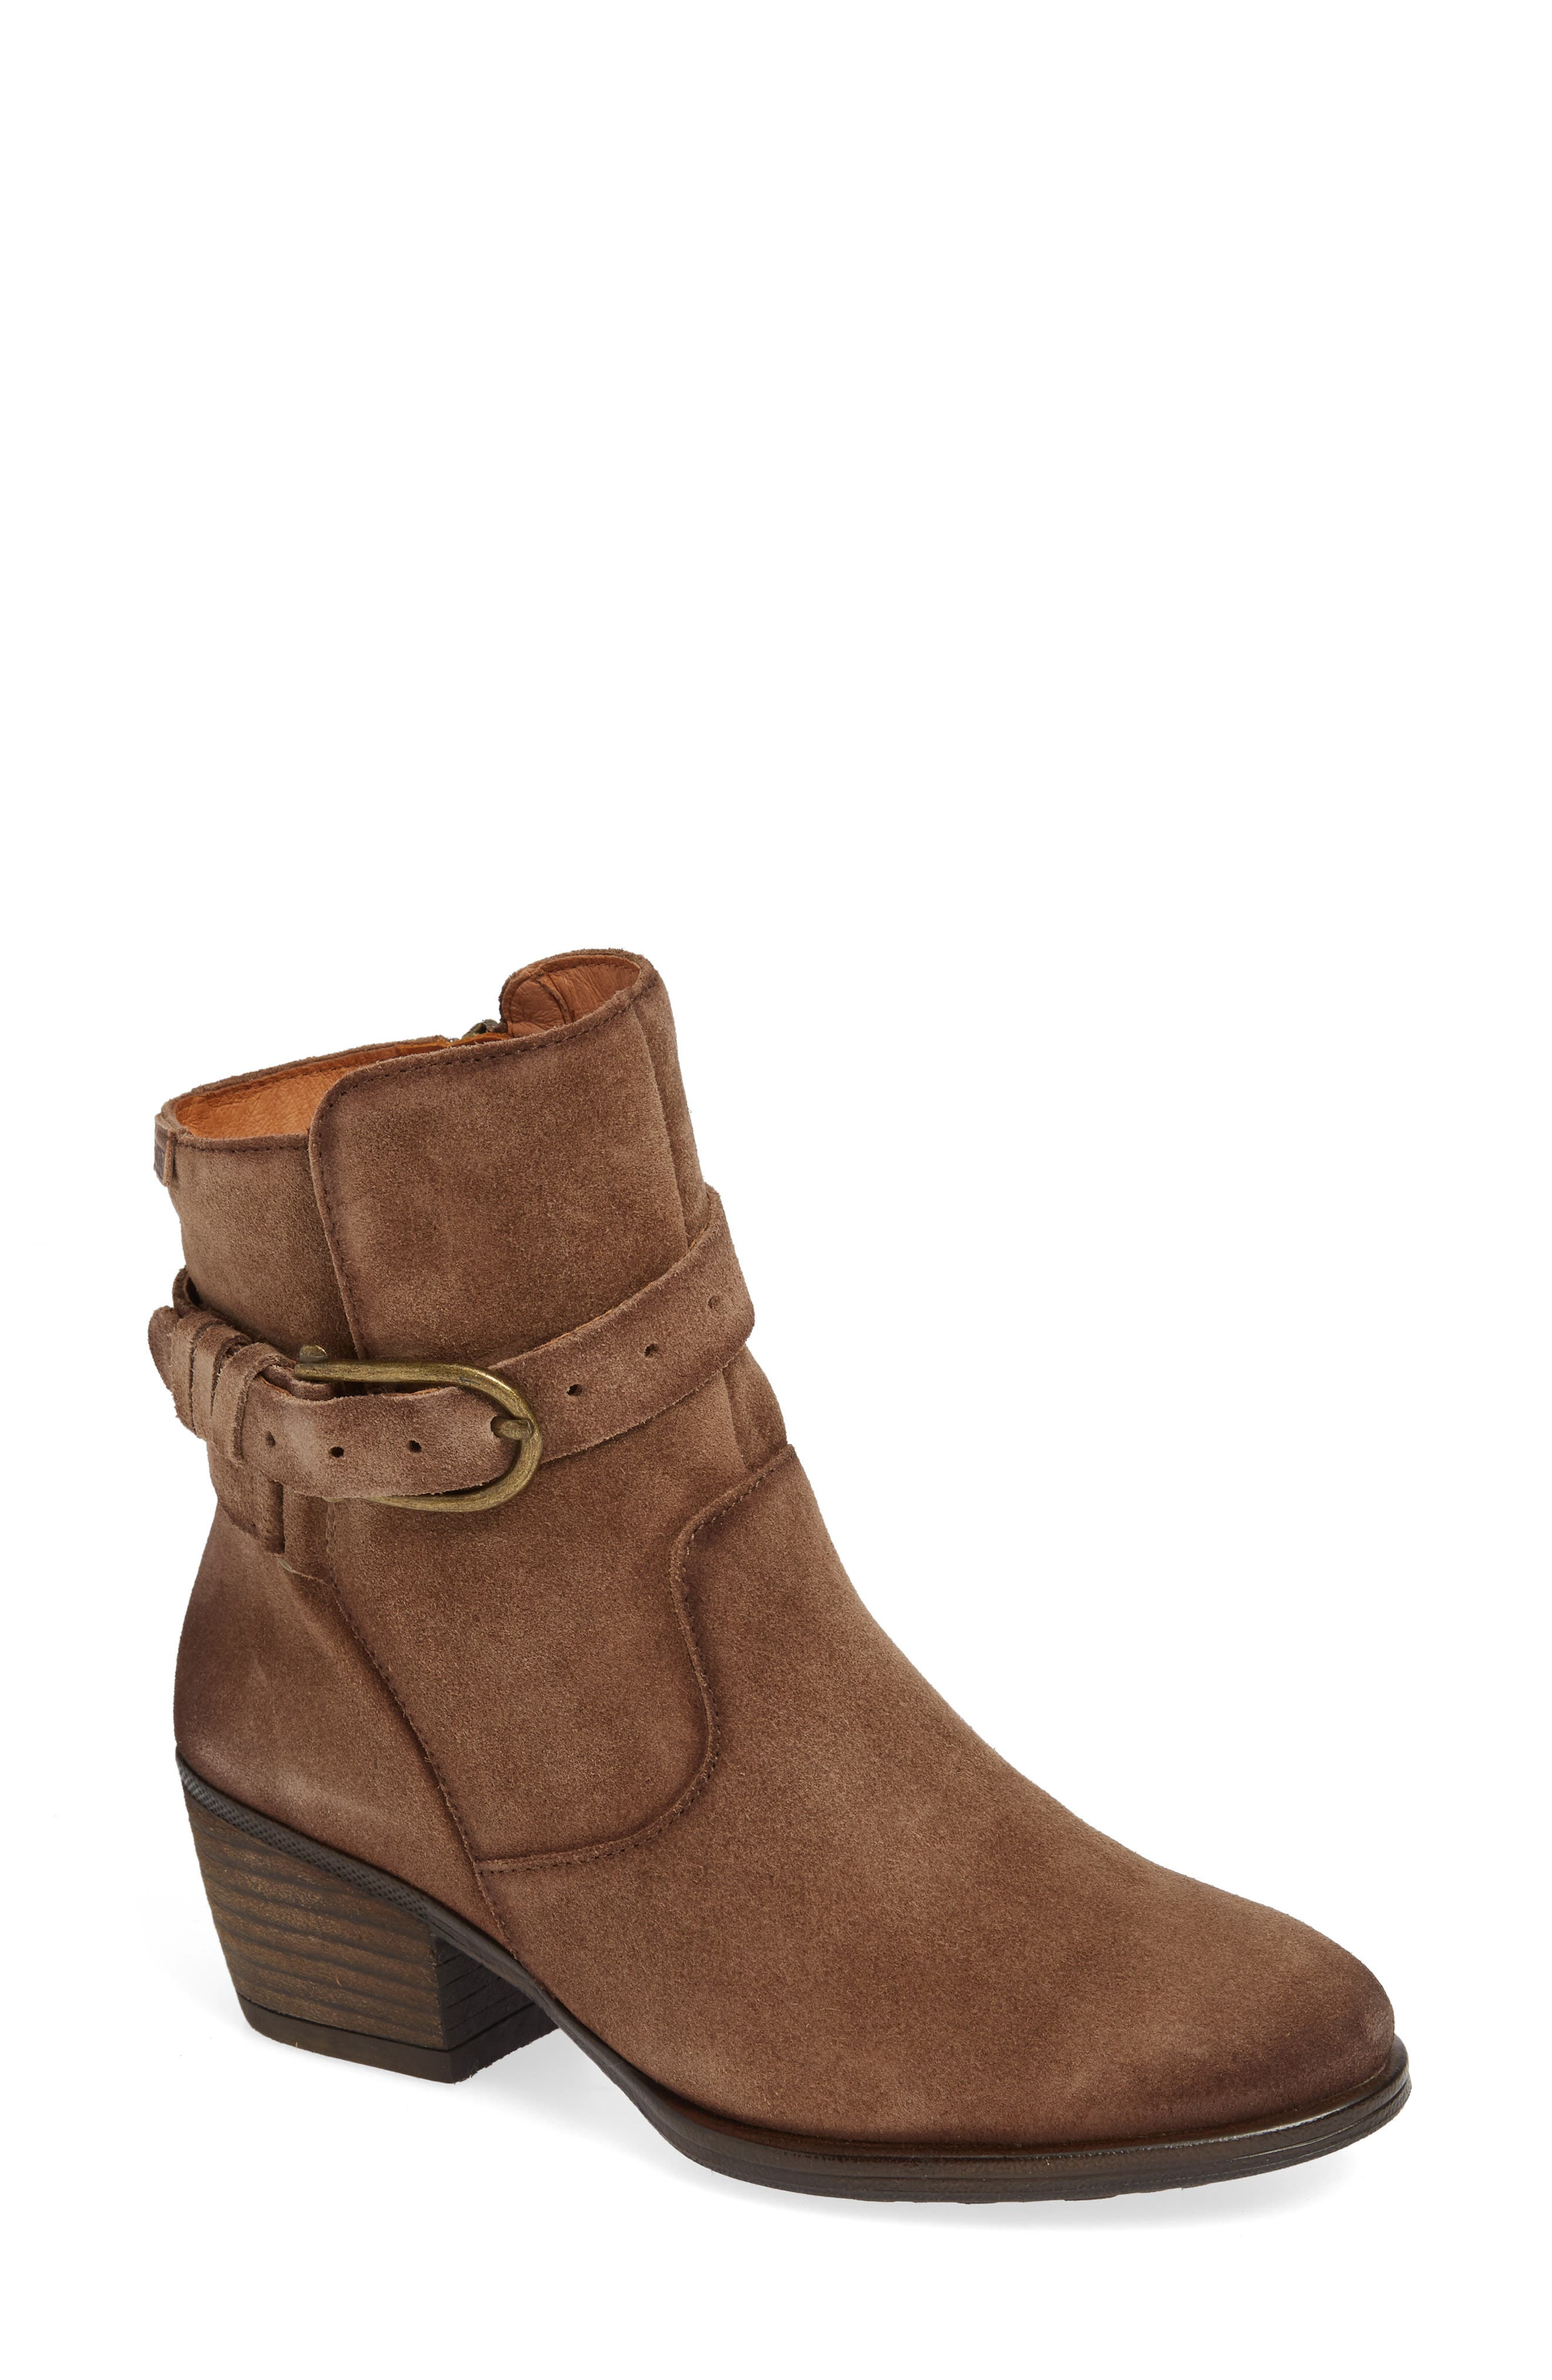 Pikolinos Baqueira Belted Bootie, Brown